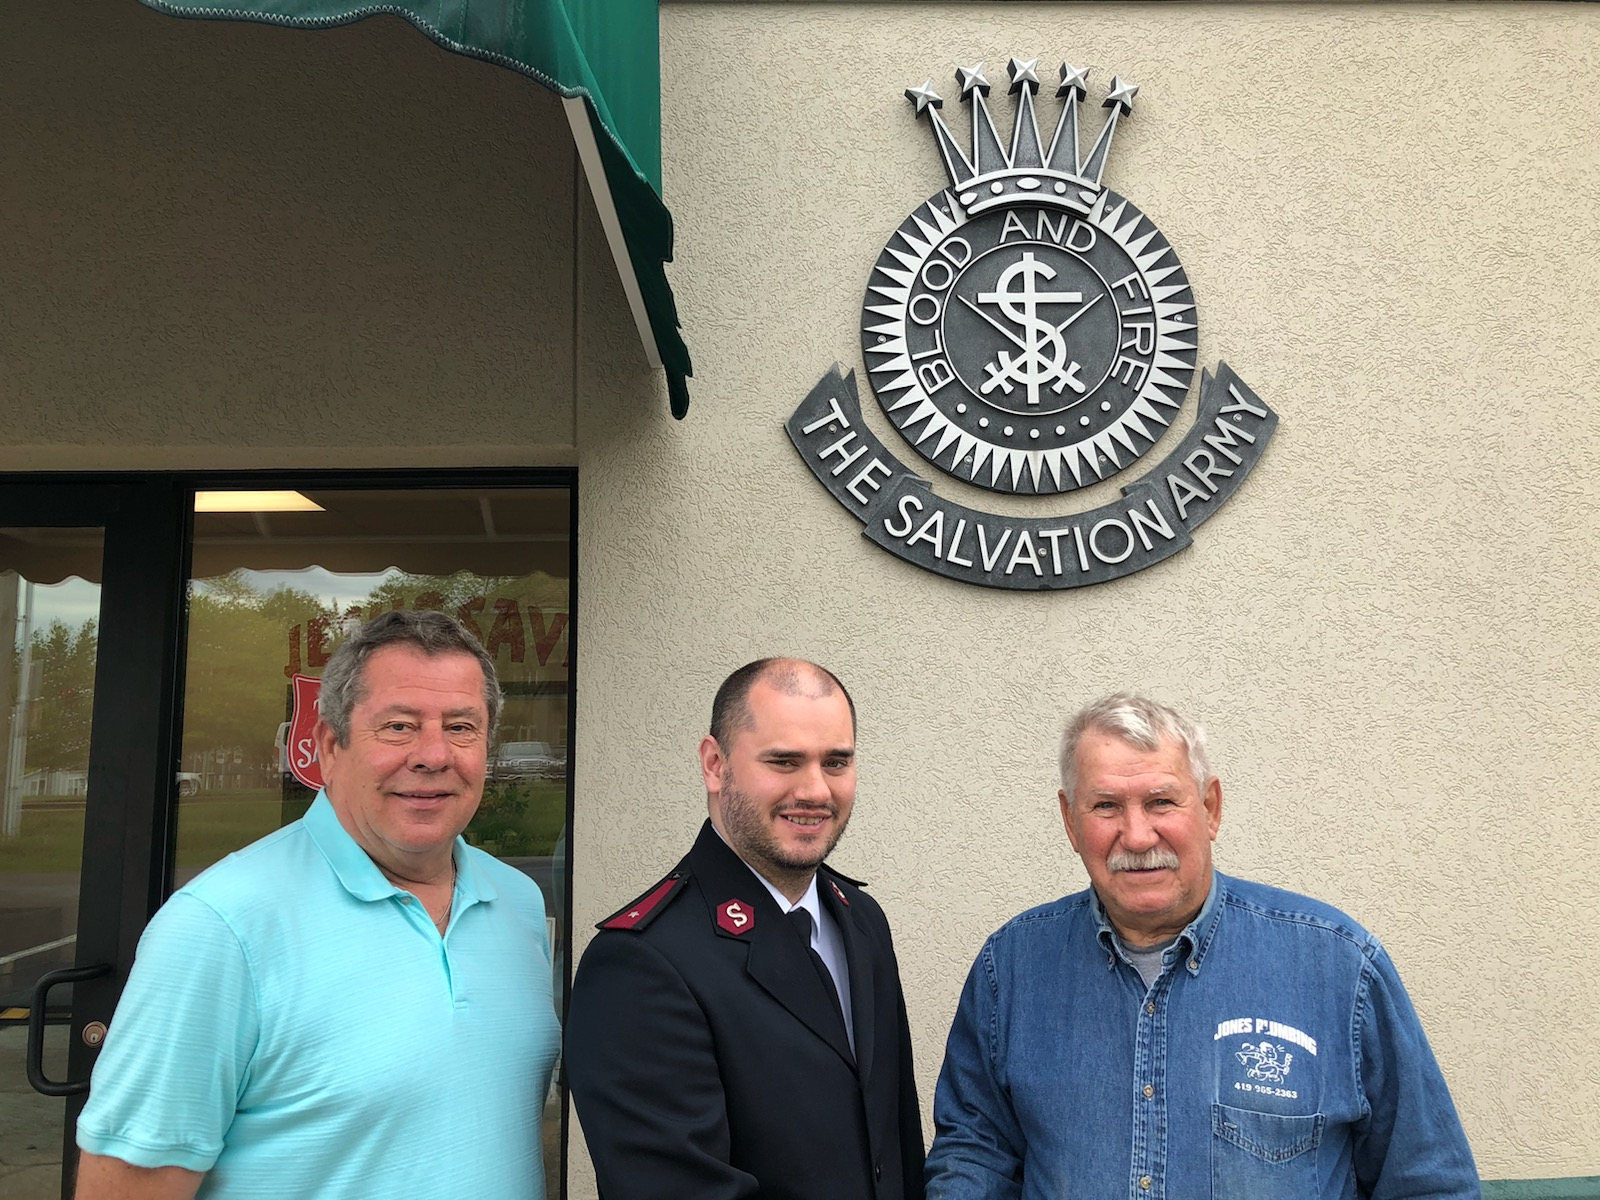 Pictured, left to right are: Jim Sowers, golf committee member; Joshua Bookman representing the Salvation Army and John Jones, golf committee member.